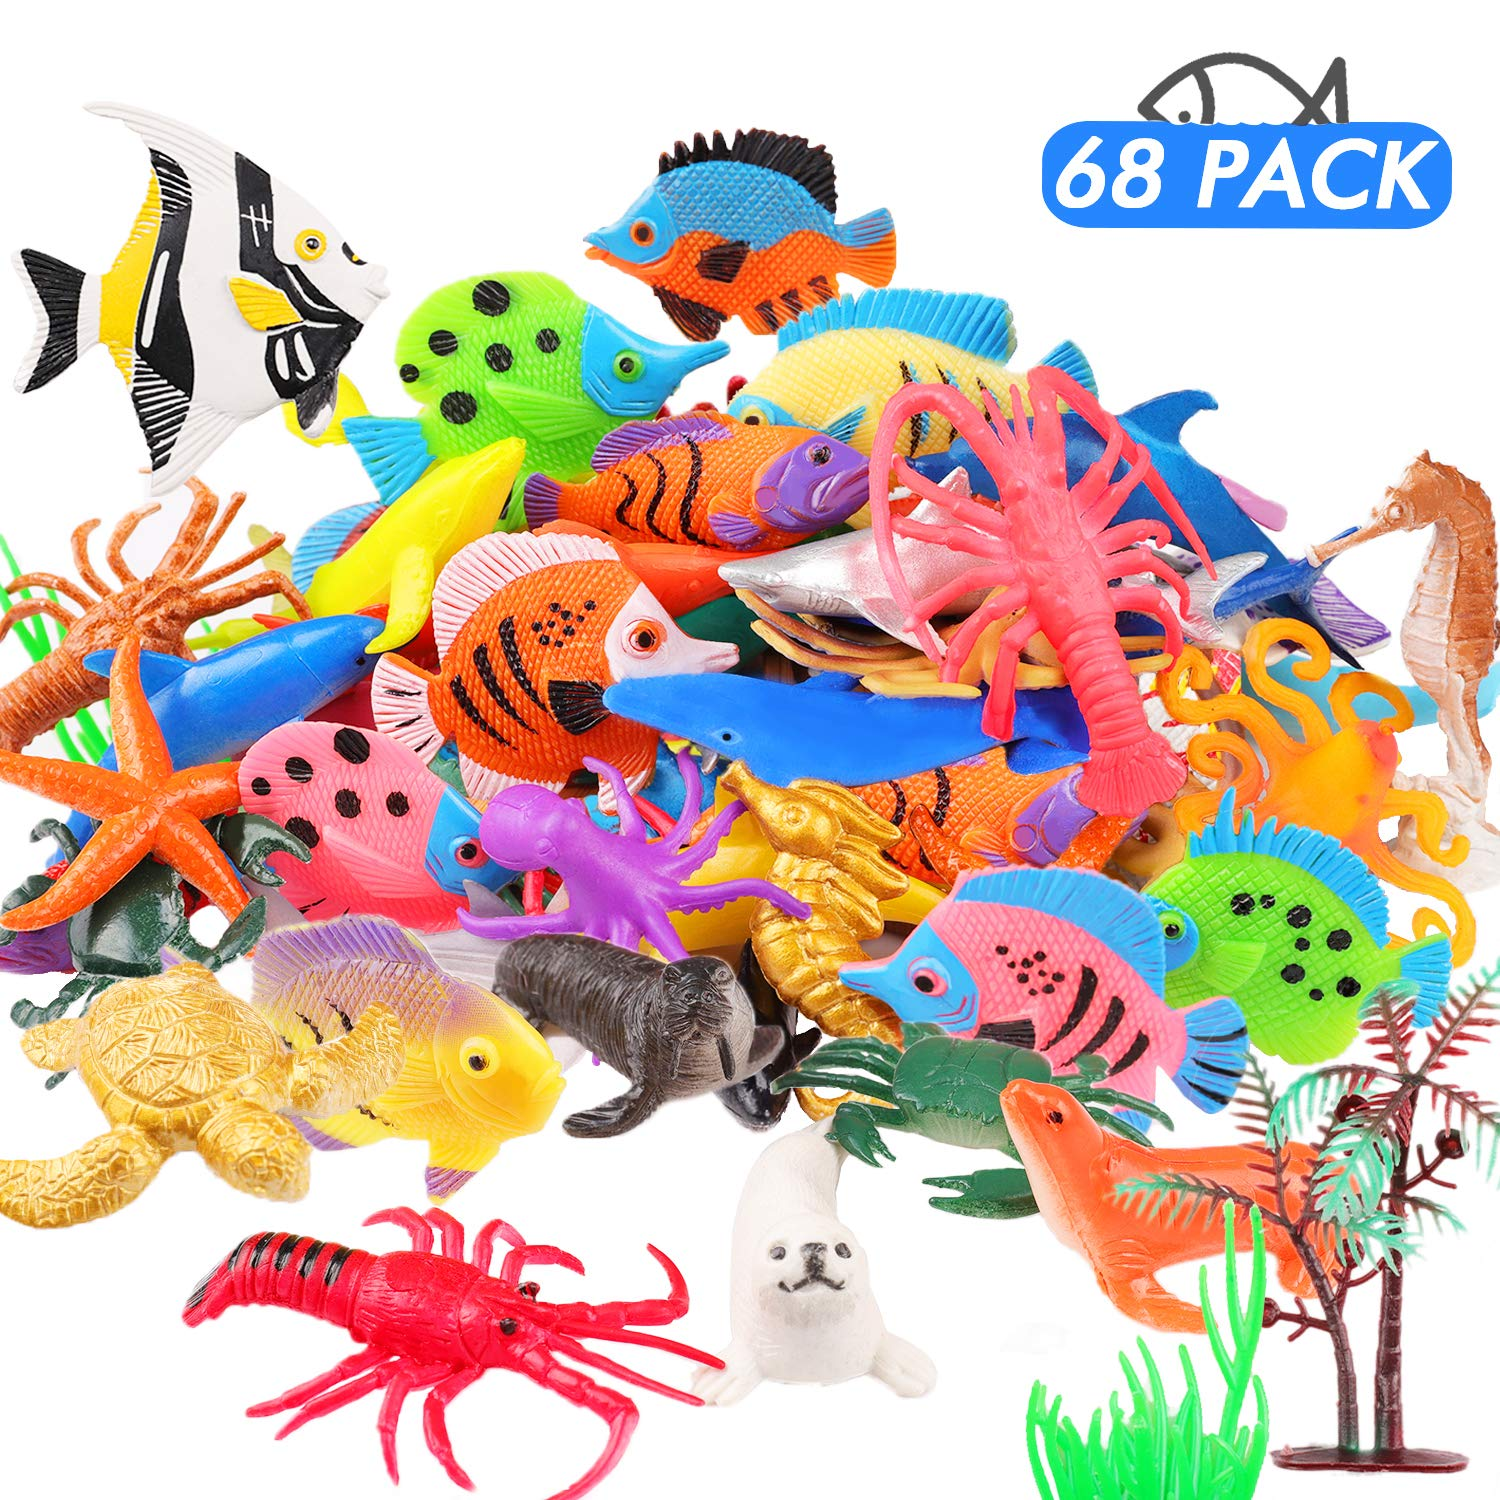 Deep Underwater Life Creatures Gift for Kids Cupcake Topper Party Favors Fish Bath Pool Toys 68 Pack Mini Plastic Sea Creature Toy Set JVIGUE Ocean Sea Animals Figures